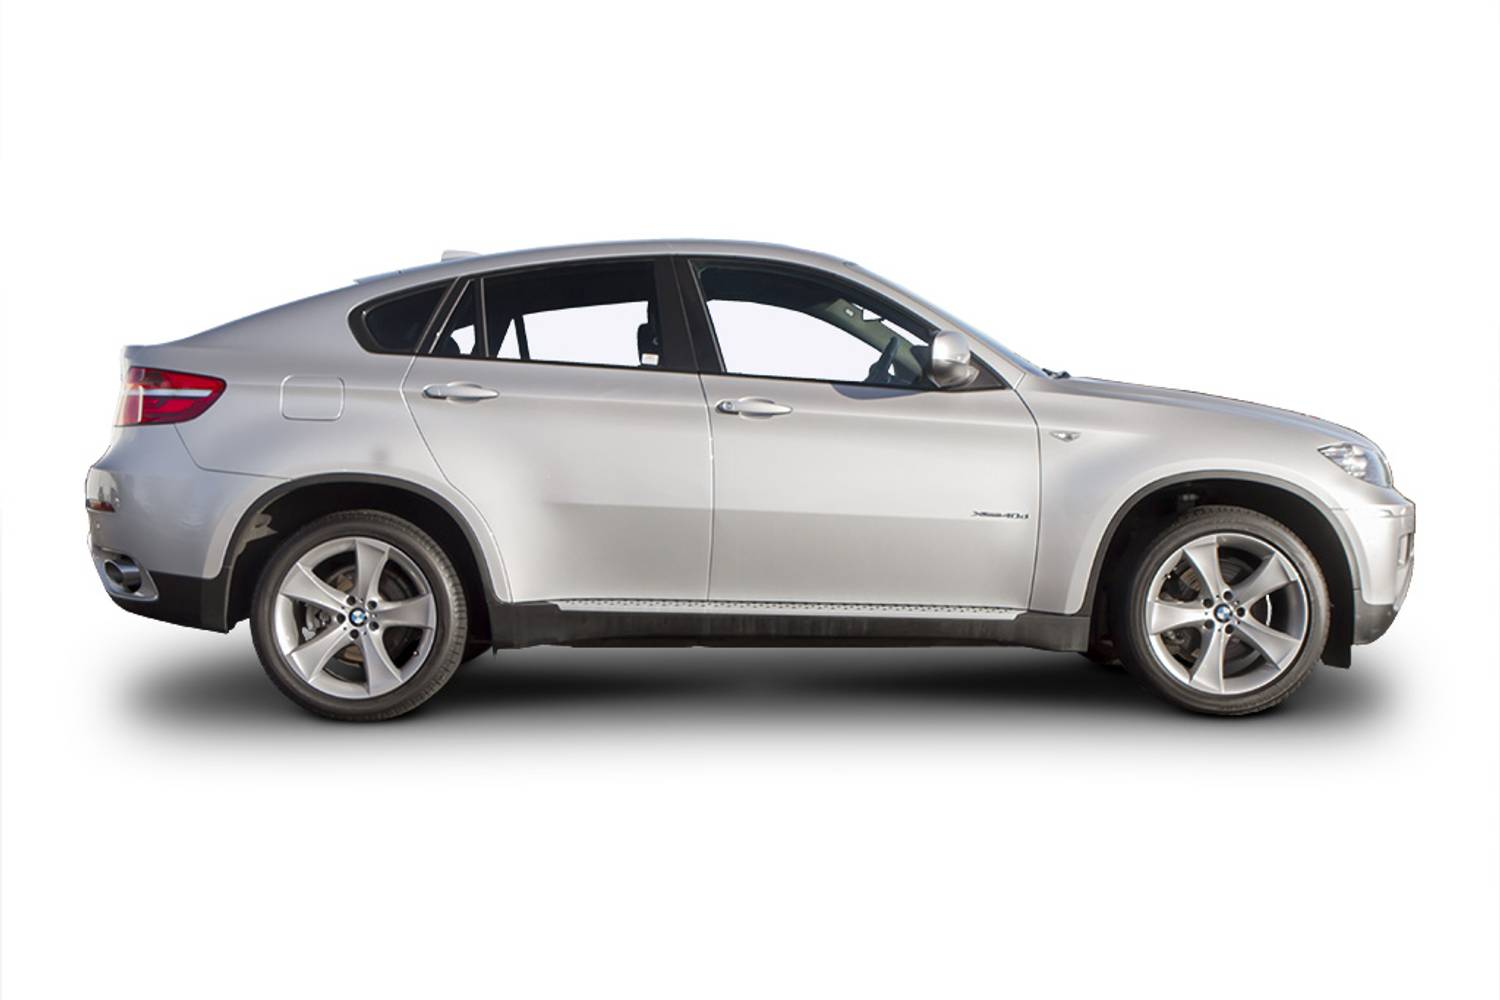 new bmw x6 estate special editions xdrive30d m sport edition 5 door step auto 2017 for sale. Black Bedroom Furniture Sets. Home Design Ideas